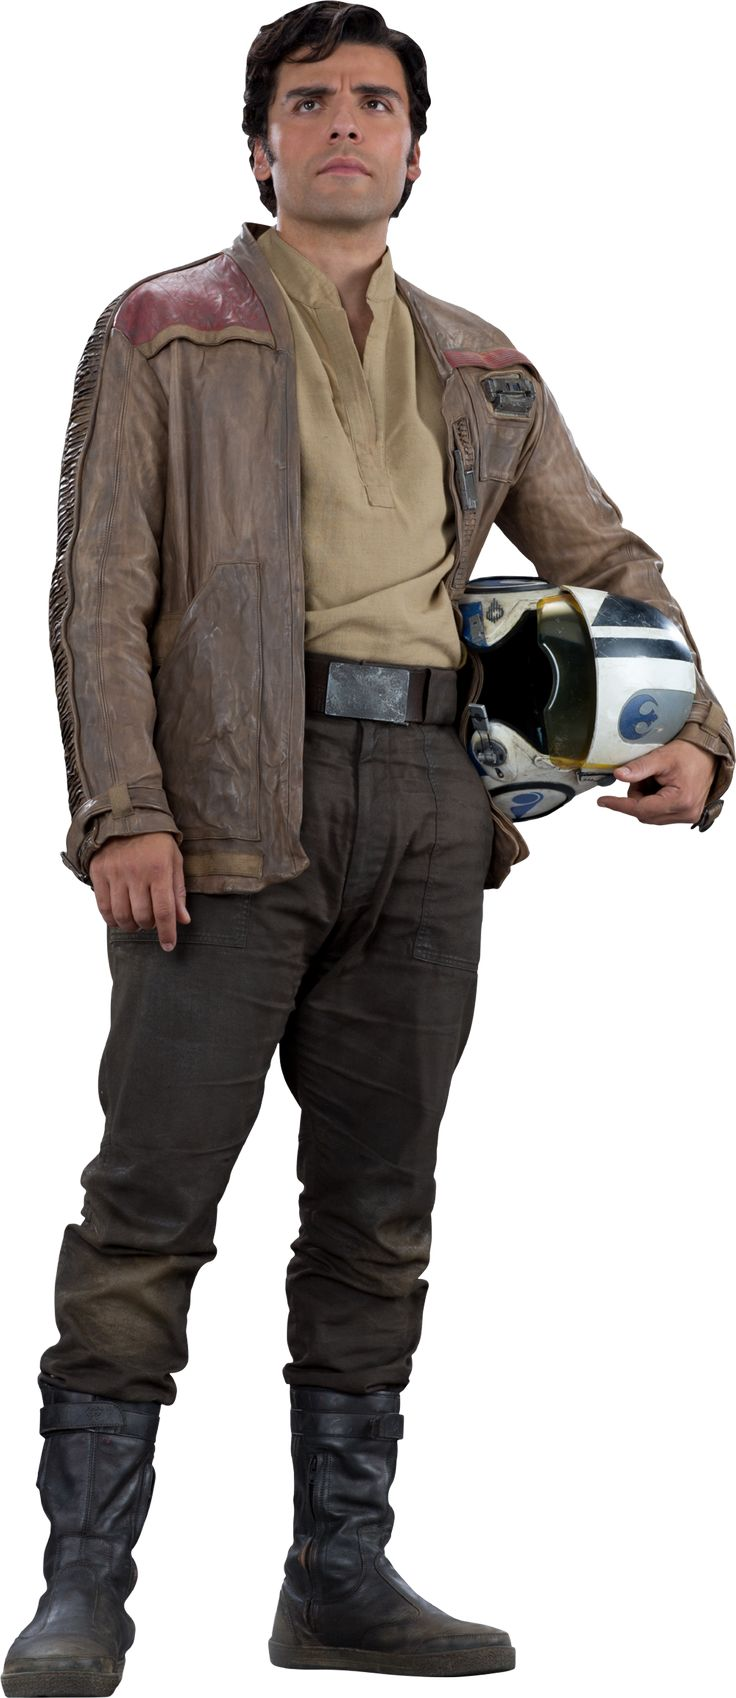 Poe Dameron from Star Wars Episode VII The Force Awakens by Aracnify i want that jacket and helmet!